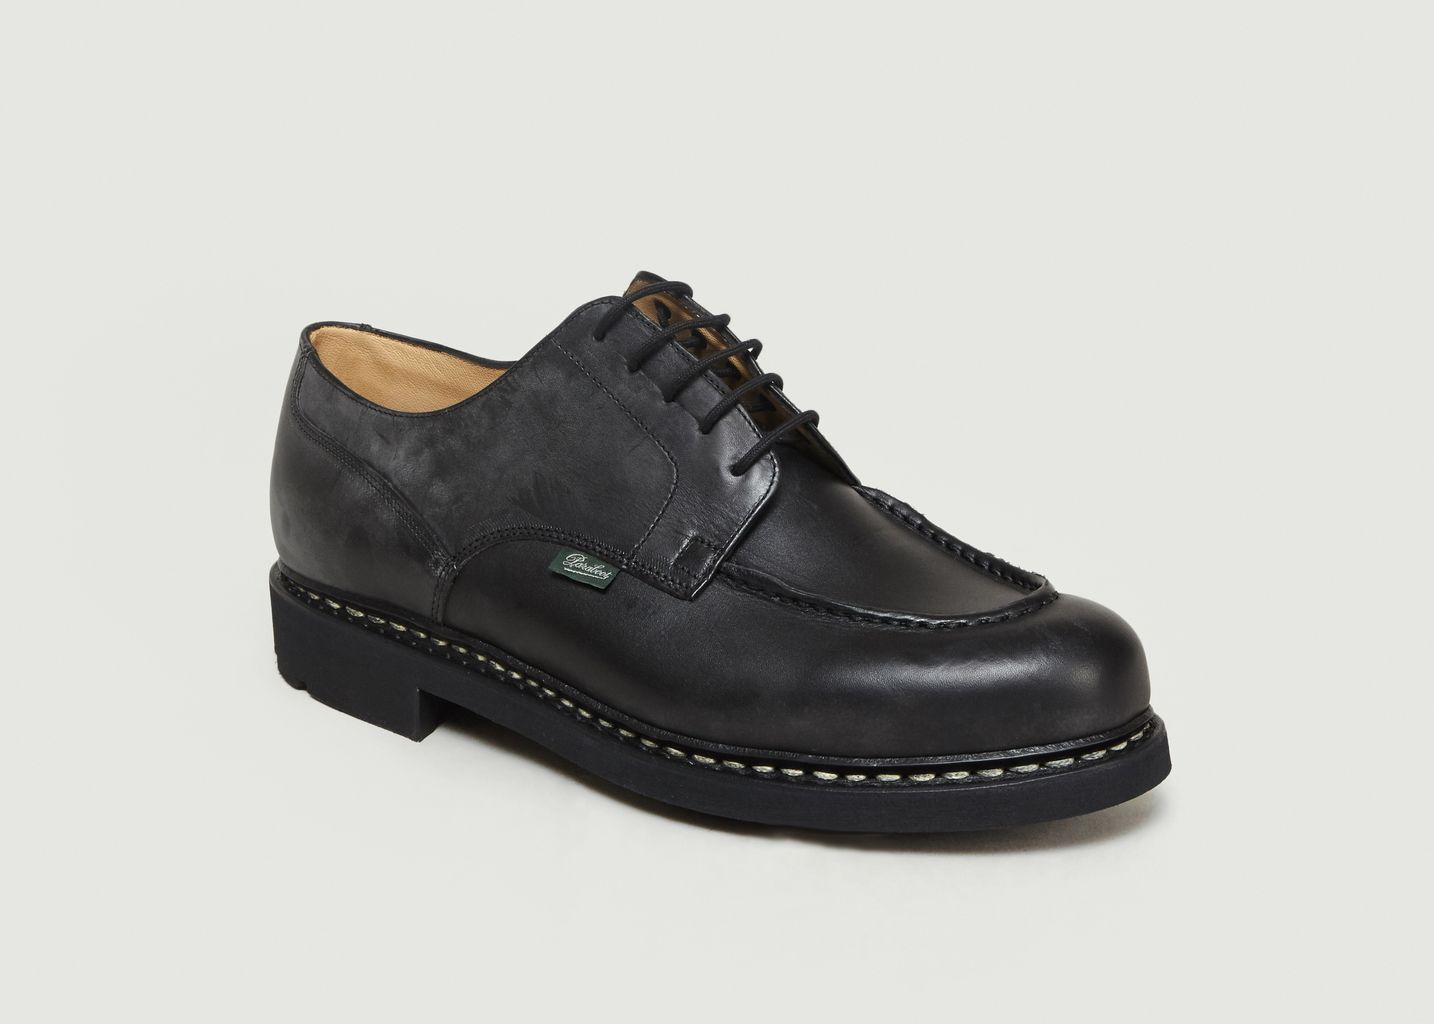 bb84ecaae4294f Chaussures Chambord Noir Paraboot | L'Exception